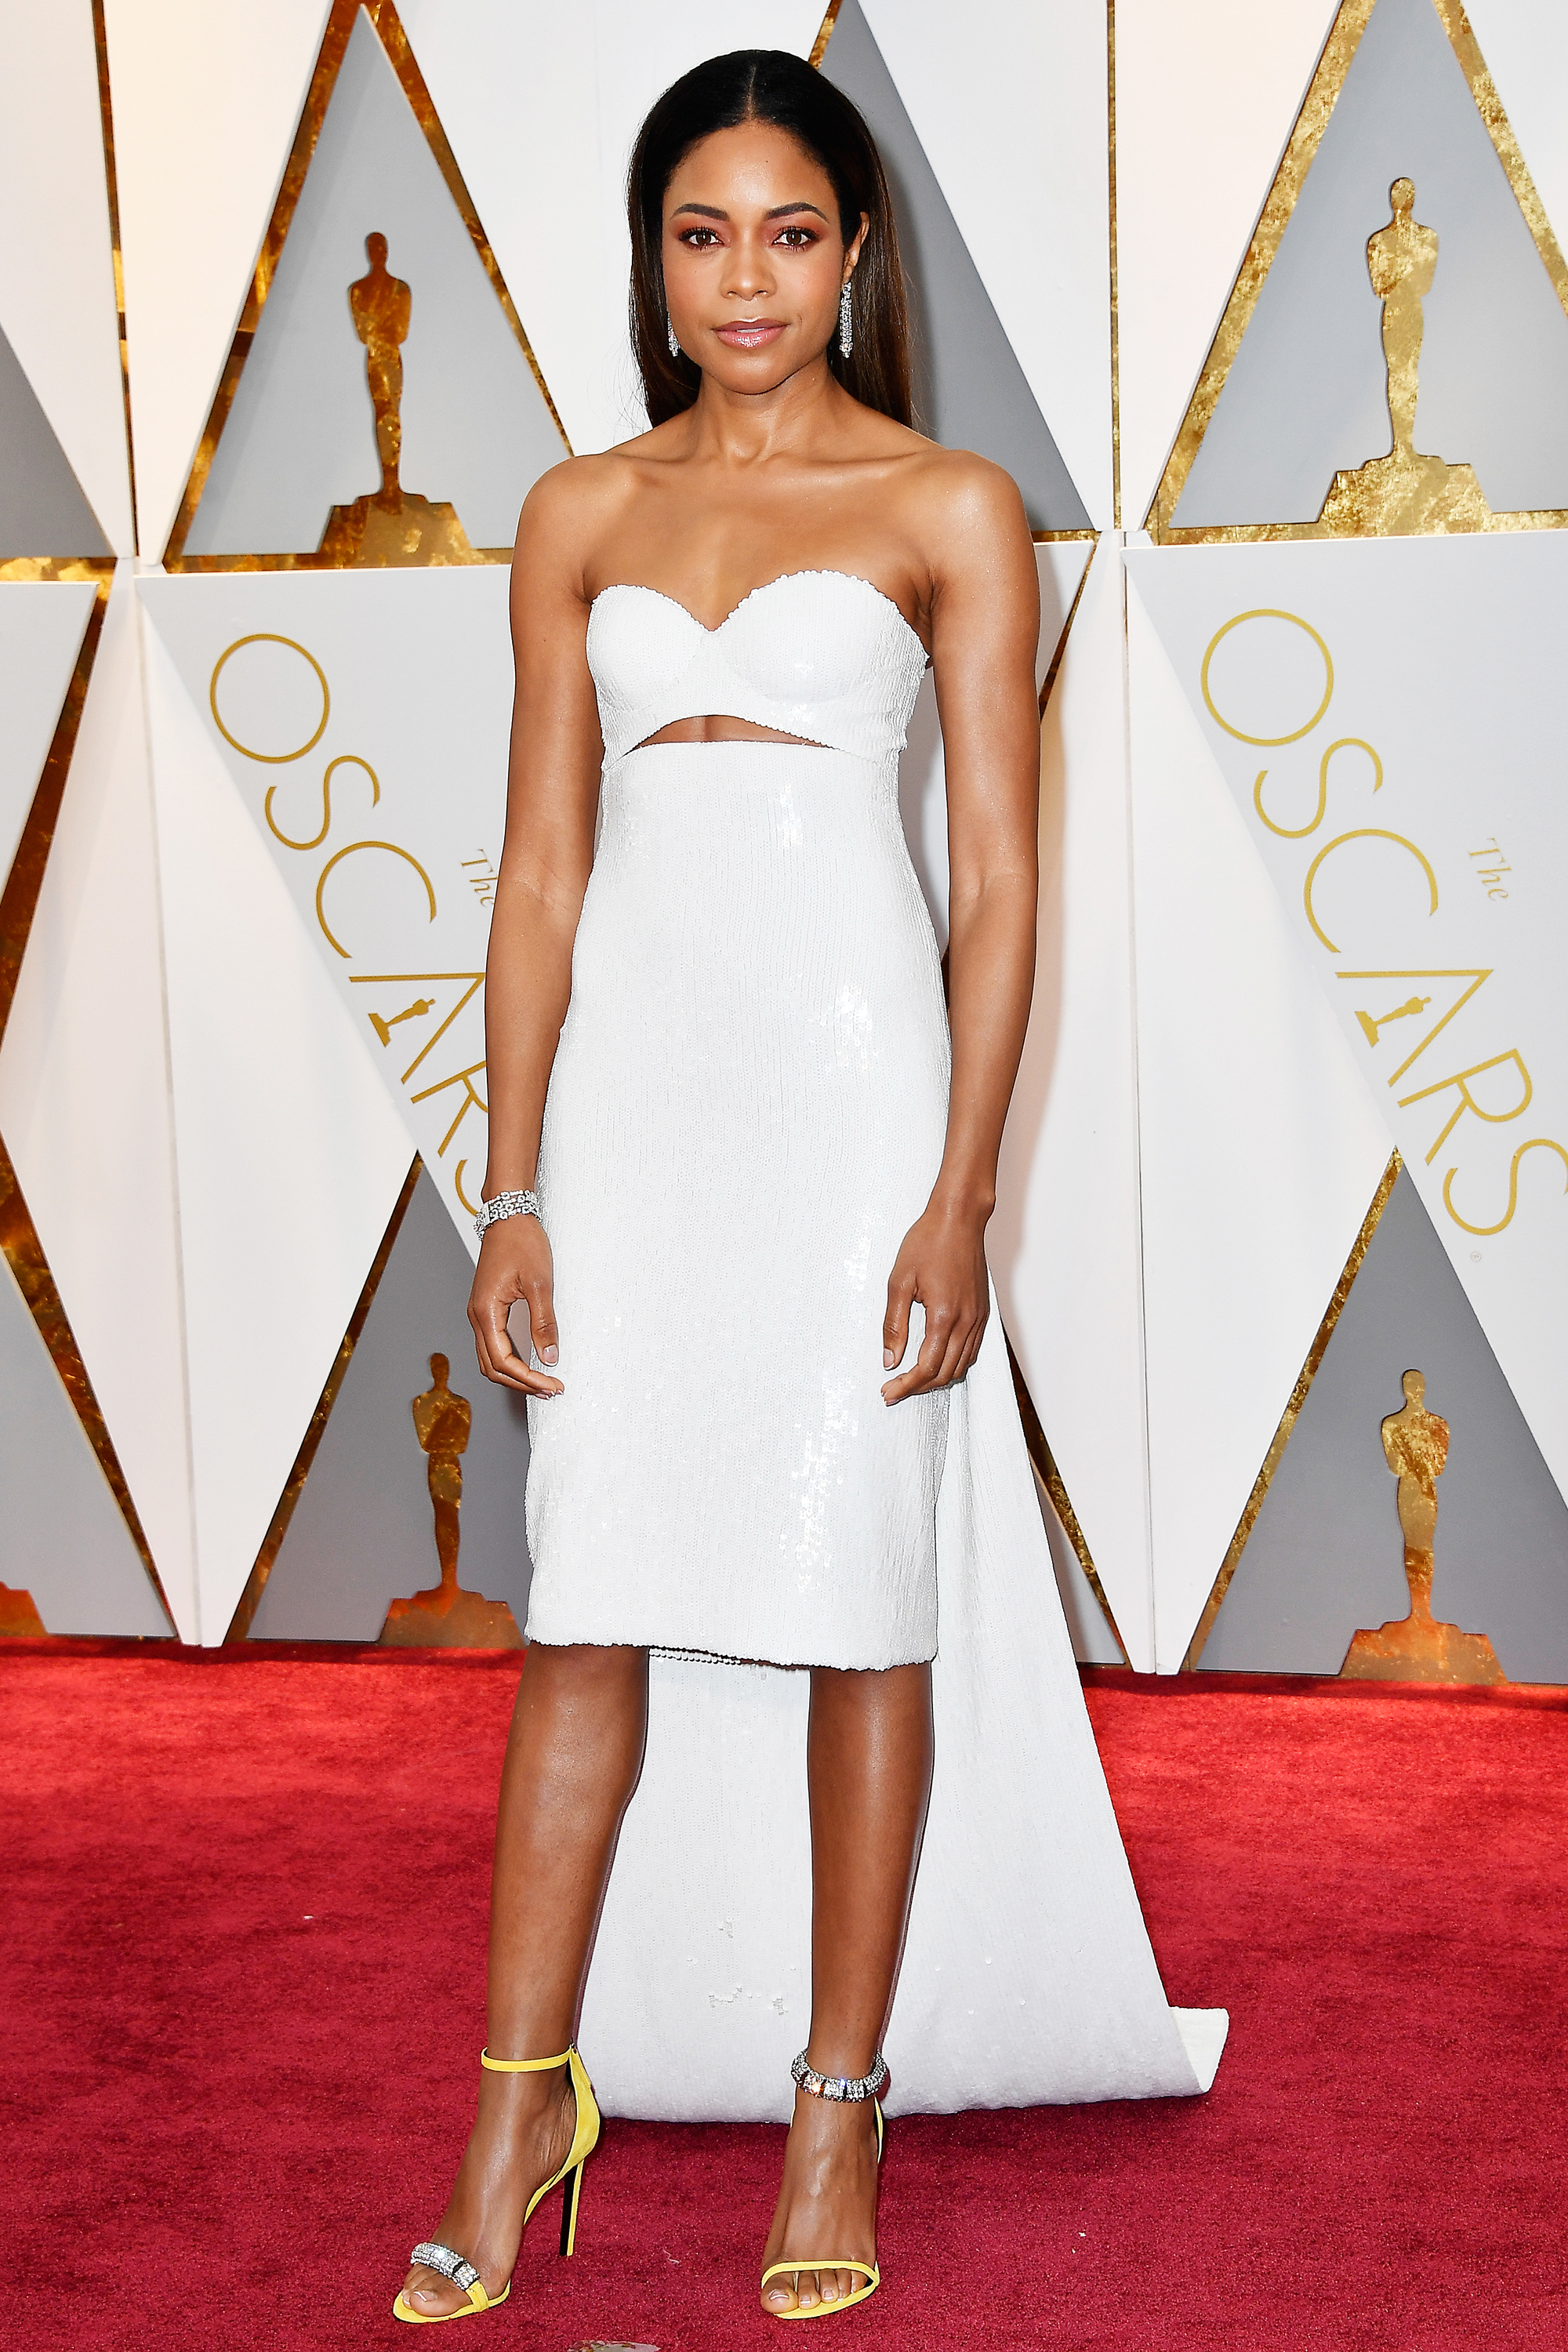 Naomie Harris on the red carpet for the 89th Oscars, on Feb. 26, 2017 in Hollywood, Calif.